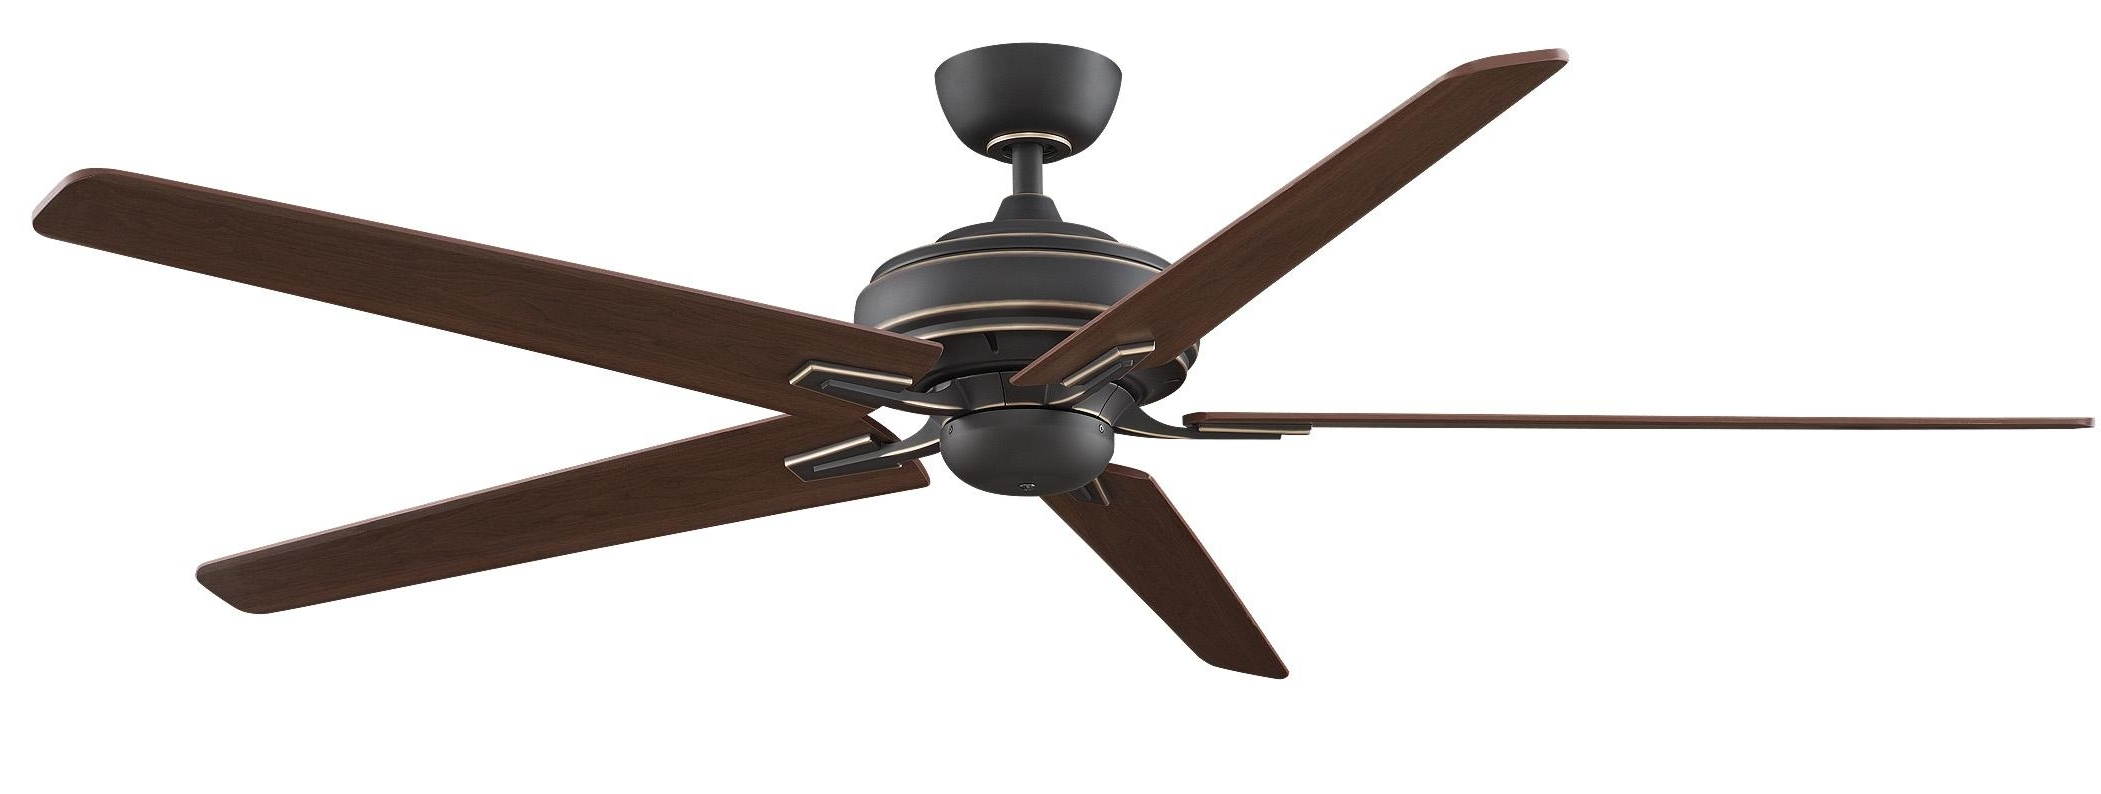 Inch Outdoor Ceiling Fan With 60 Ceiling Fan With Light Intended For Fashionable 72 Inch Outdoor Ceiling Fans (View 8 of 20)